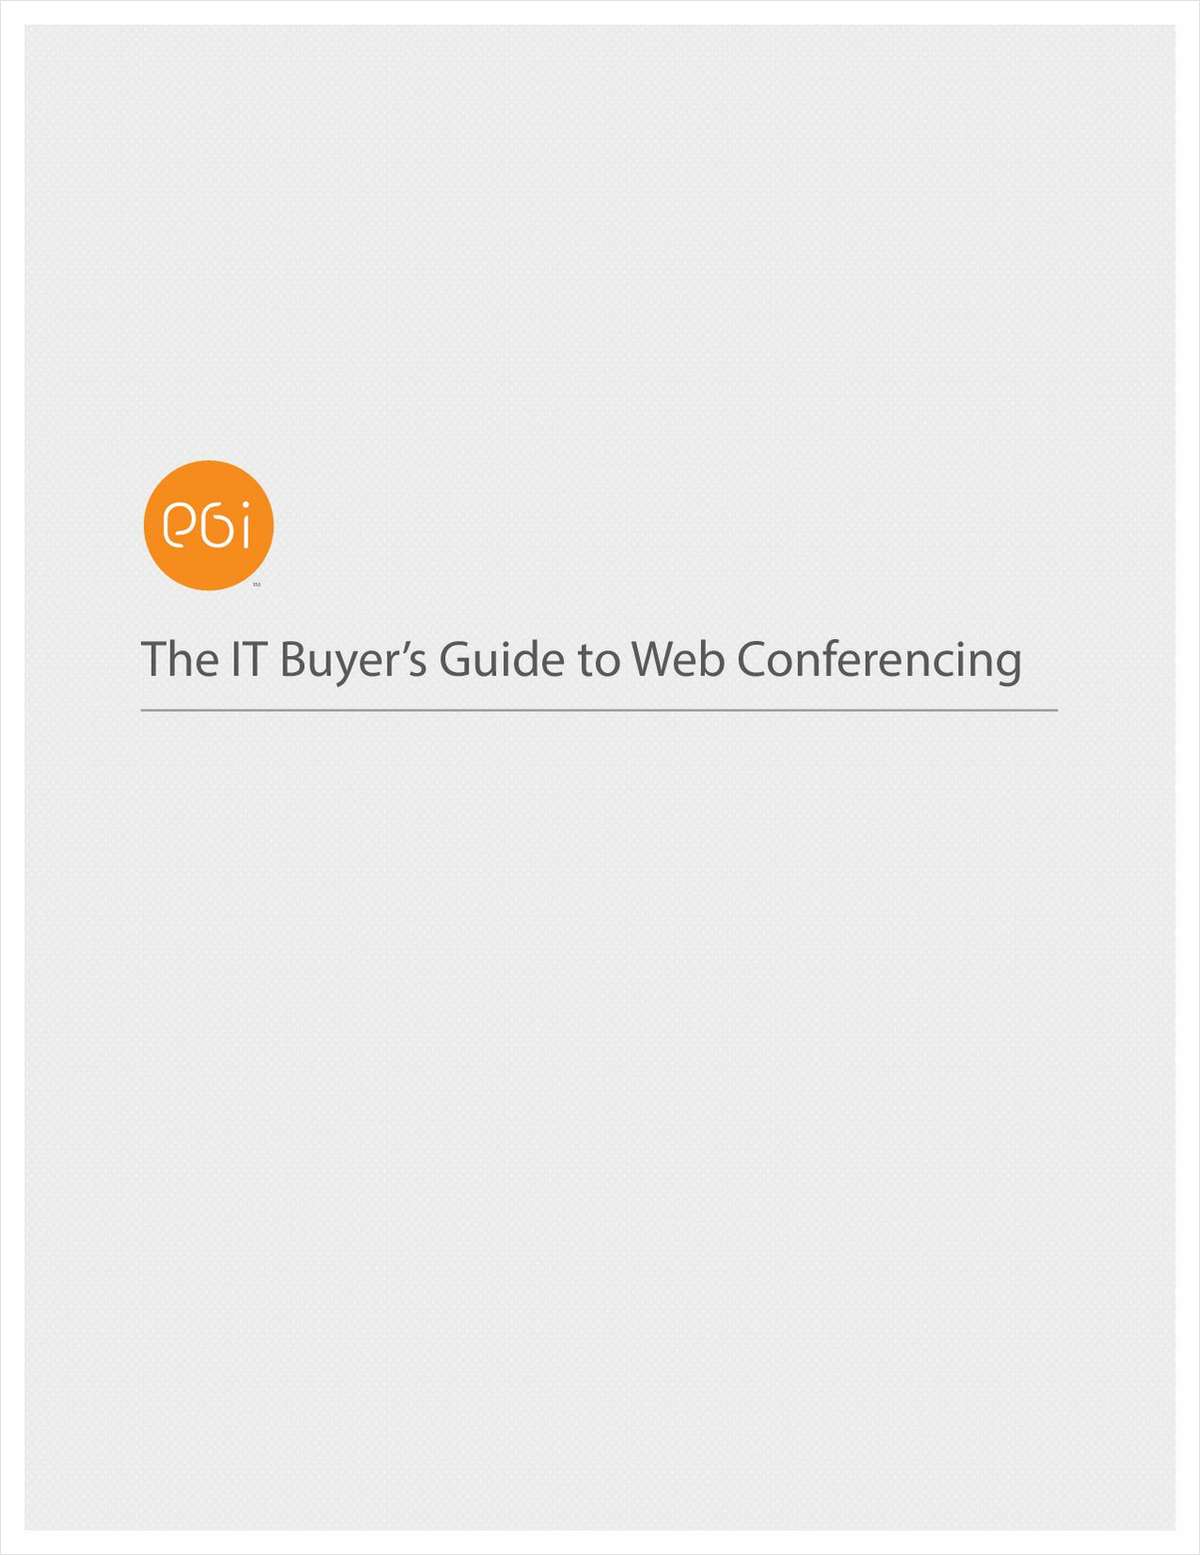 The IT Buyer's Guide to Web Conferencing